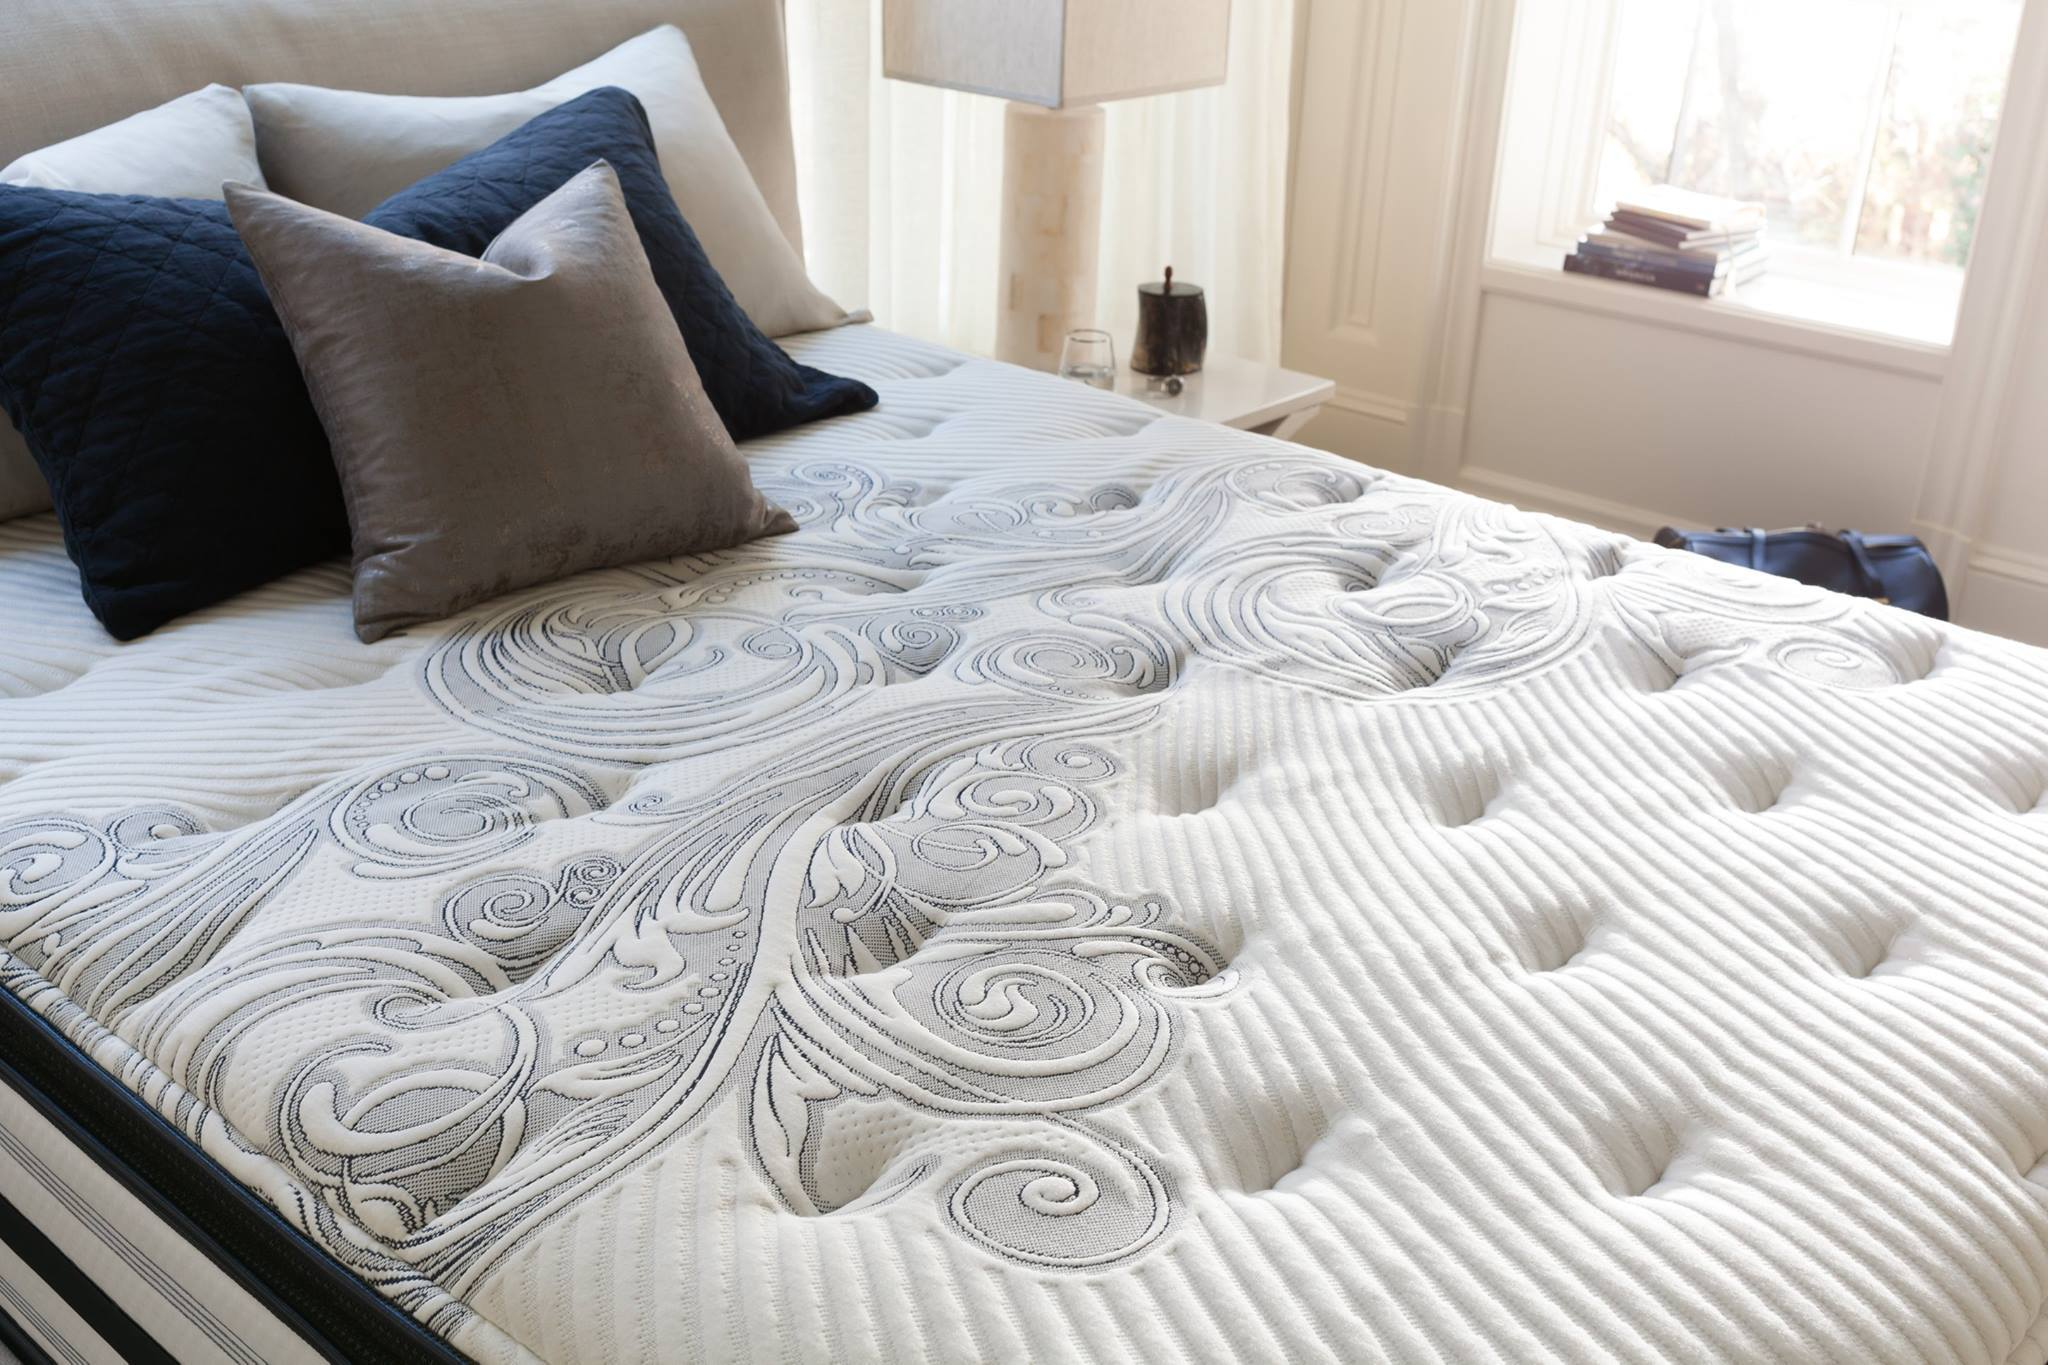 Hibernate Bedding – Natural Talalay Latex Mattress And Latex Pillow Store In Hoboken New Jersey